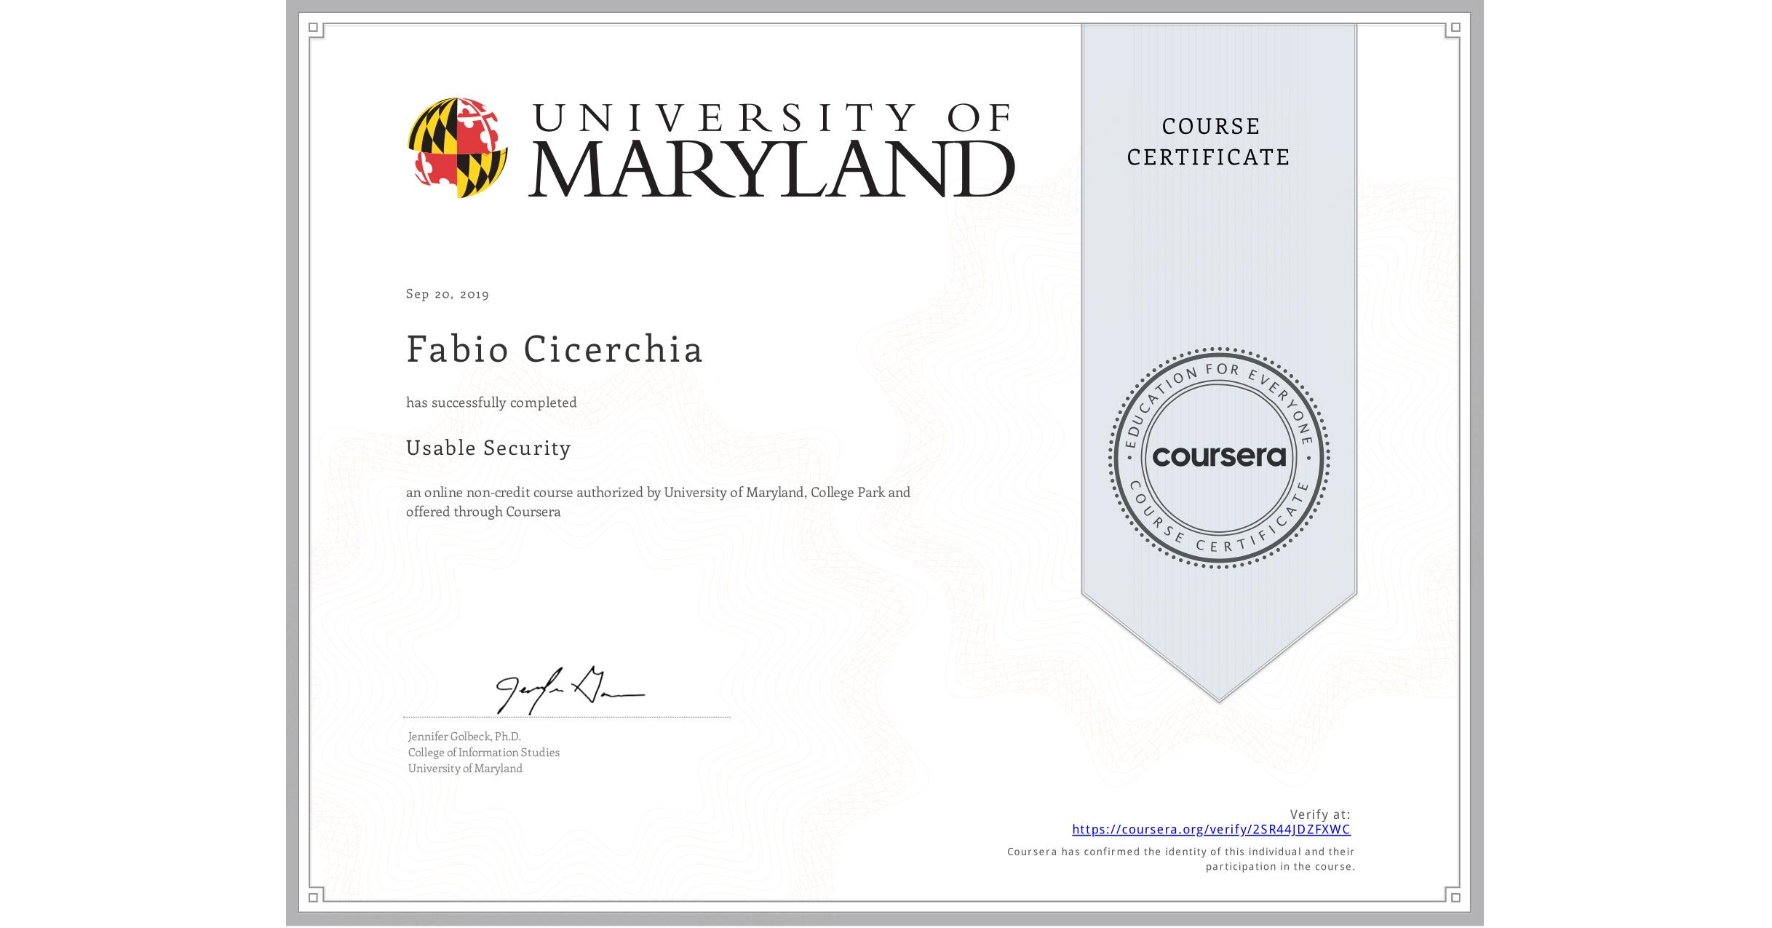 View certificate for Fabio Cicerchia, Usable Security, an online non-credit course authorized by University of Maryland, College Park and offered through Coursera